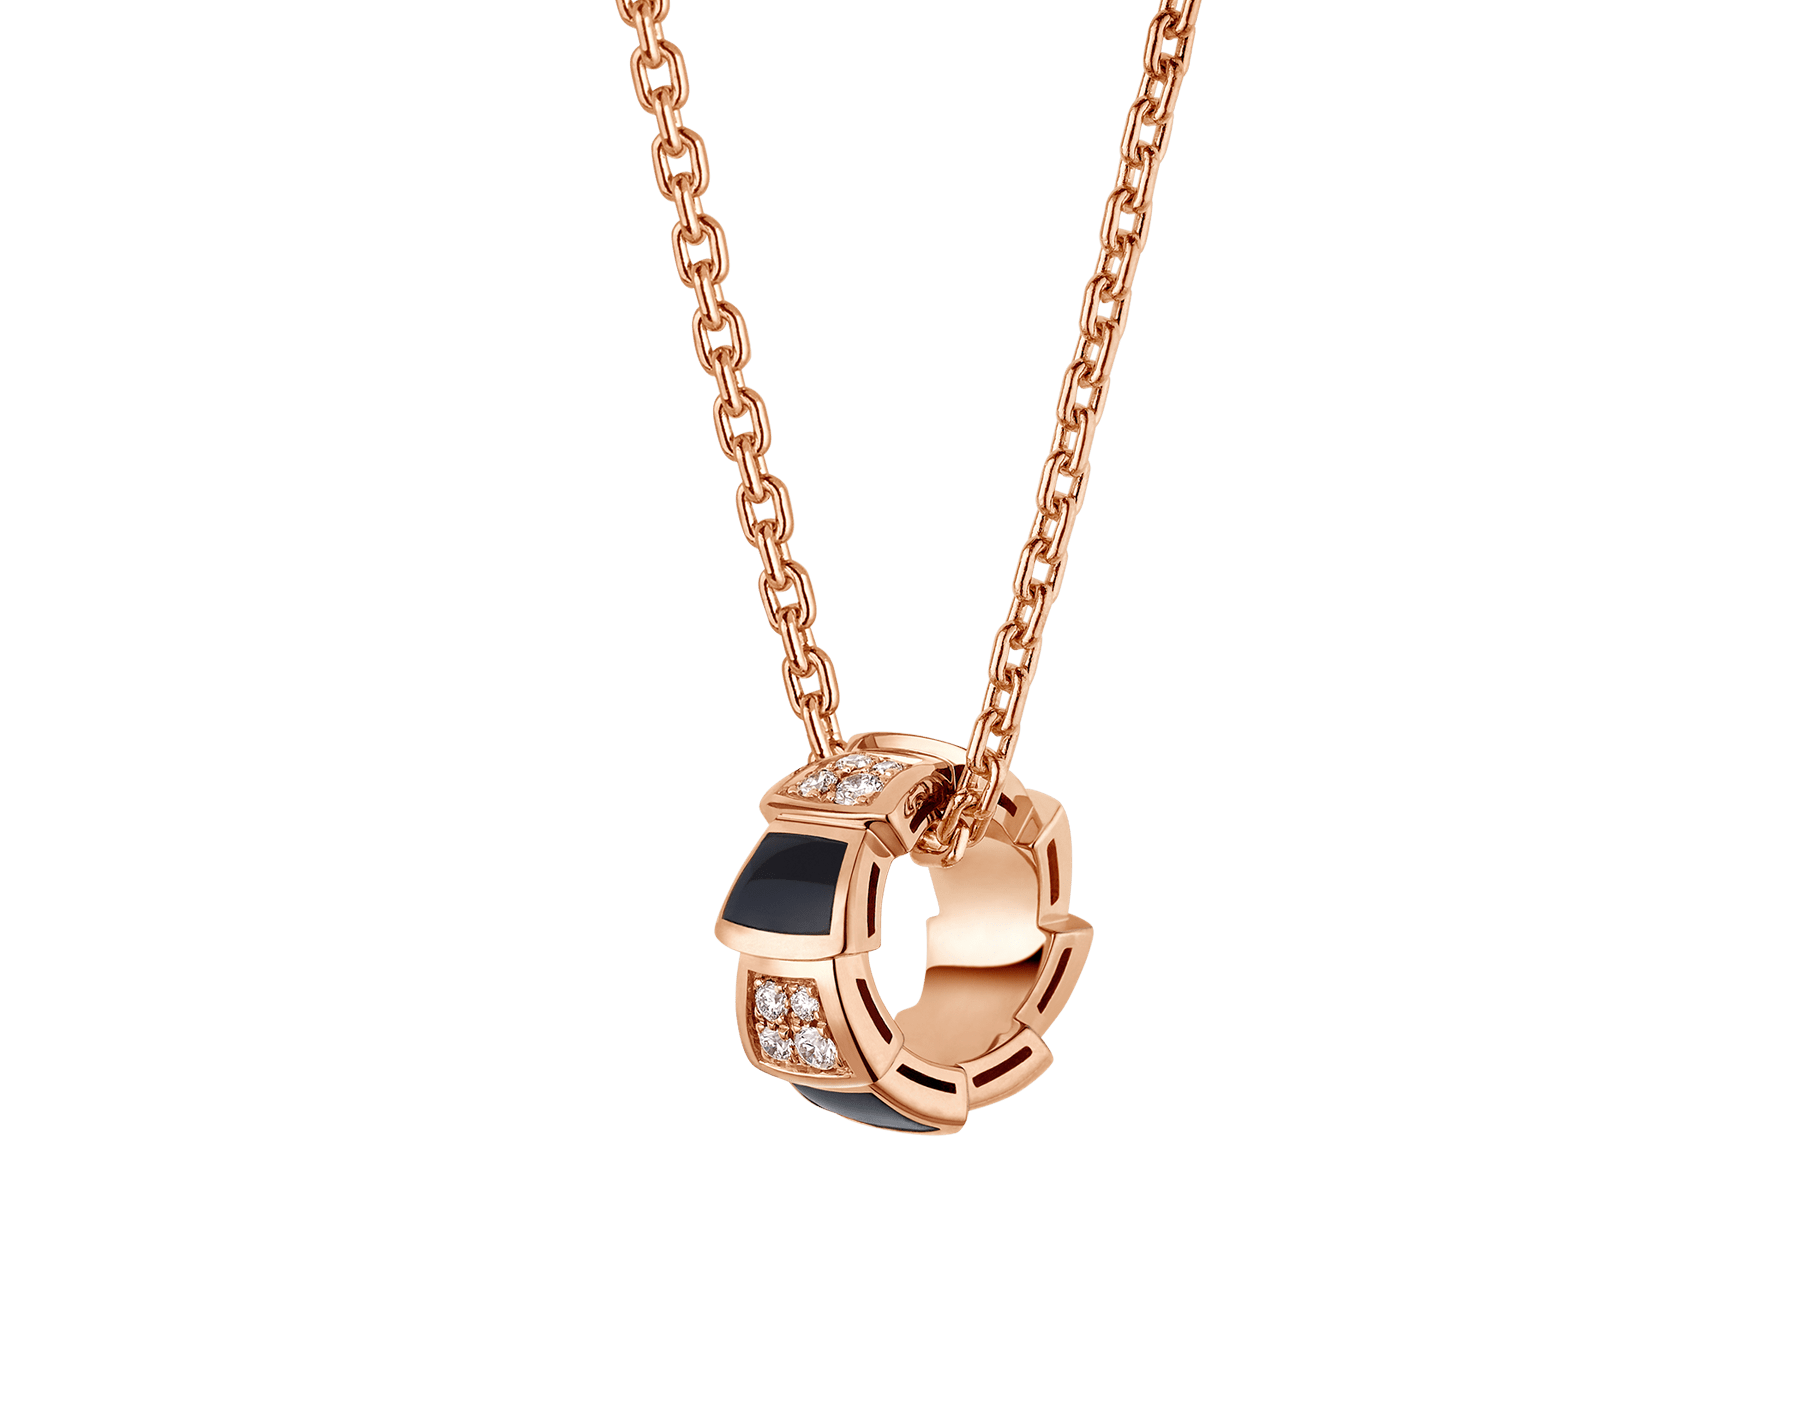 Serpenti Viper 18 kt rose gold necklace set with onyx elements and pavé diamonds (0.21 ct) on the pendant 356554 image 1